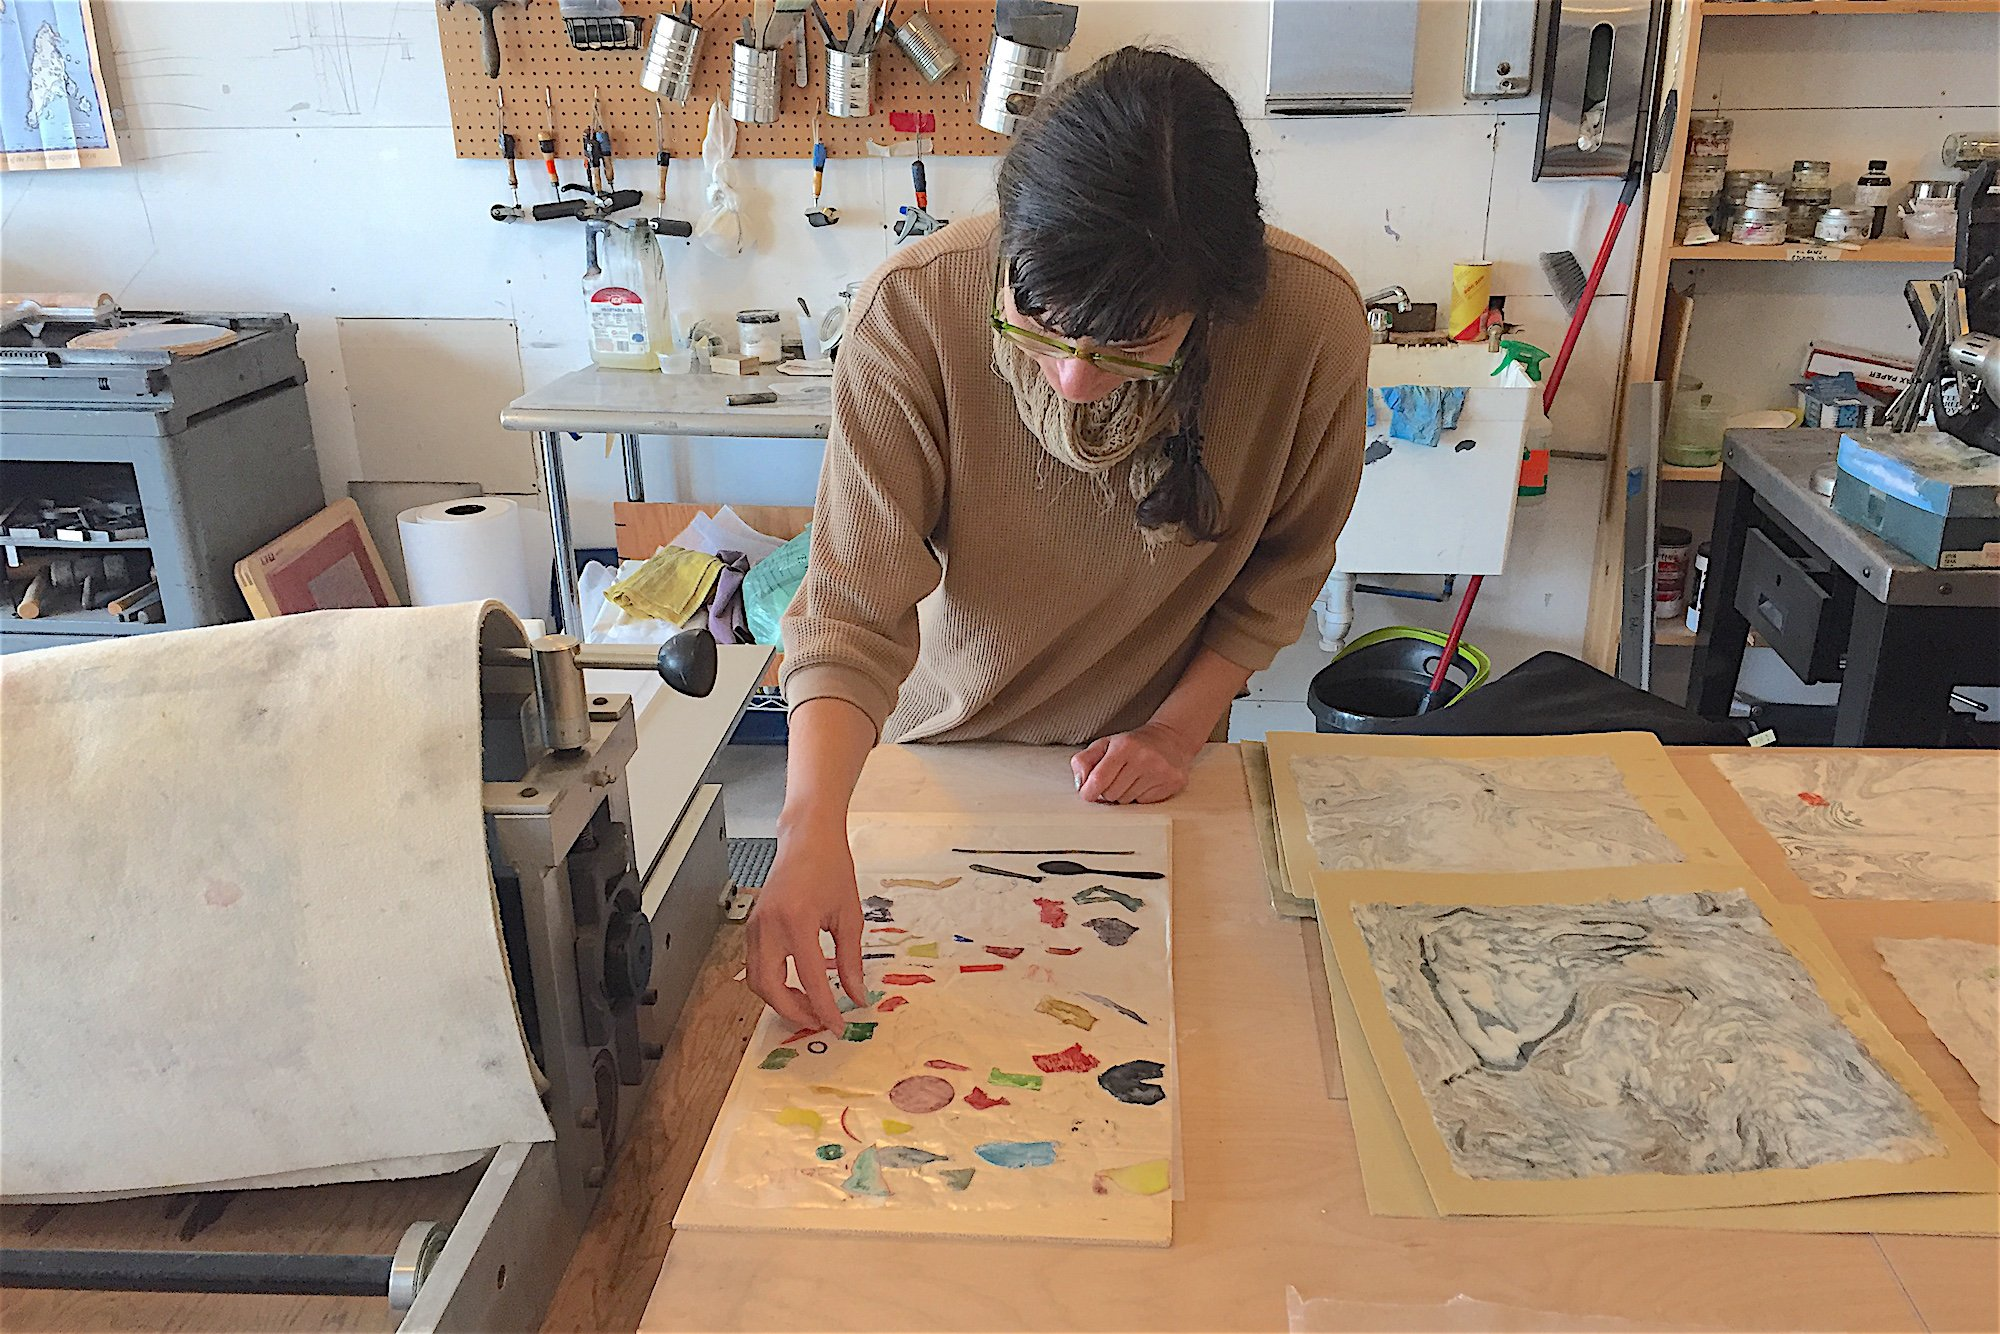 StudioWorks Artist-in-Residence Program